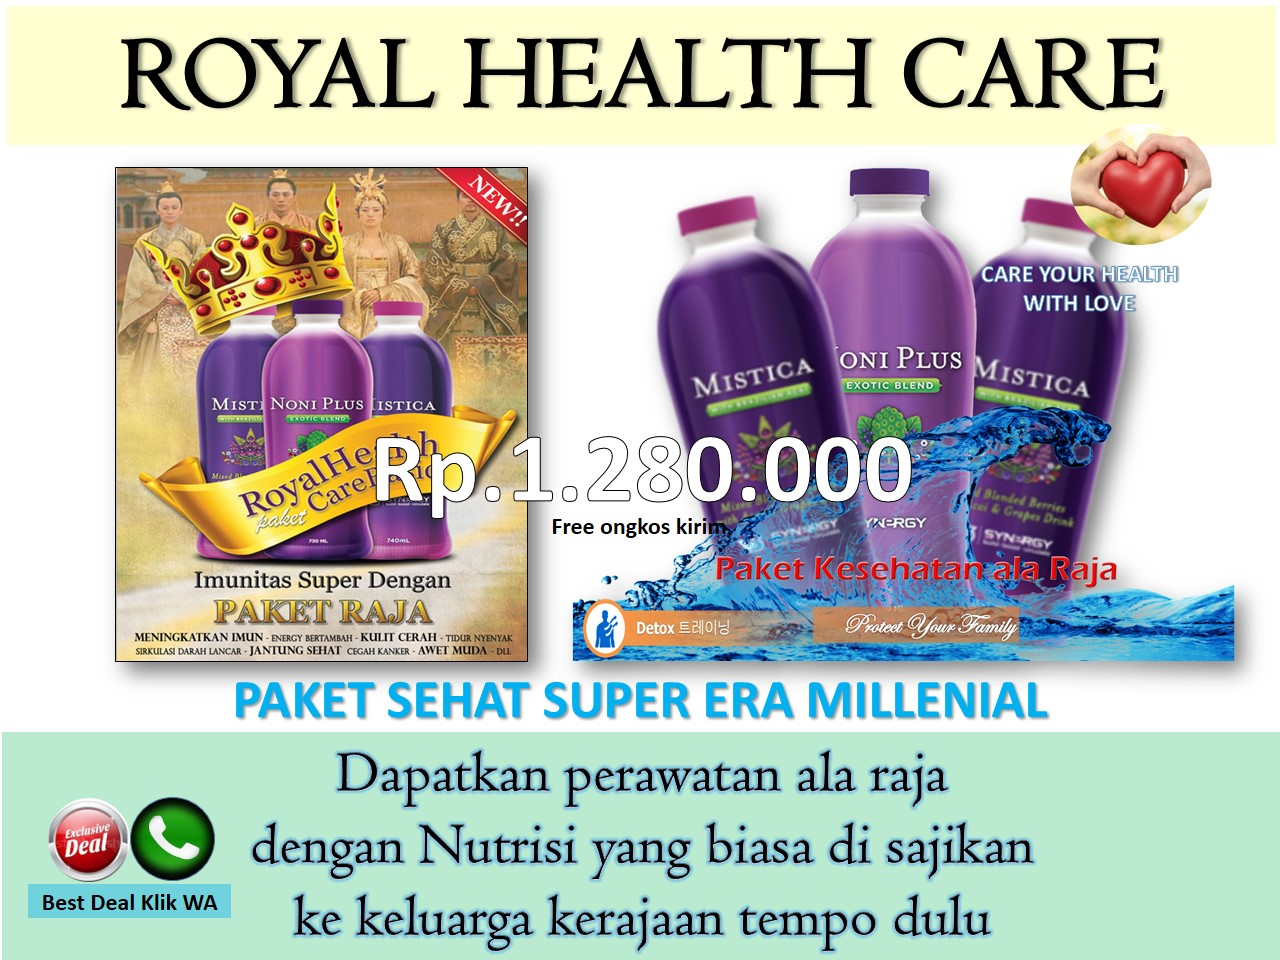 ROYAL HEALTH CARE - PAKET RAJA